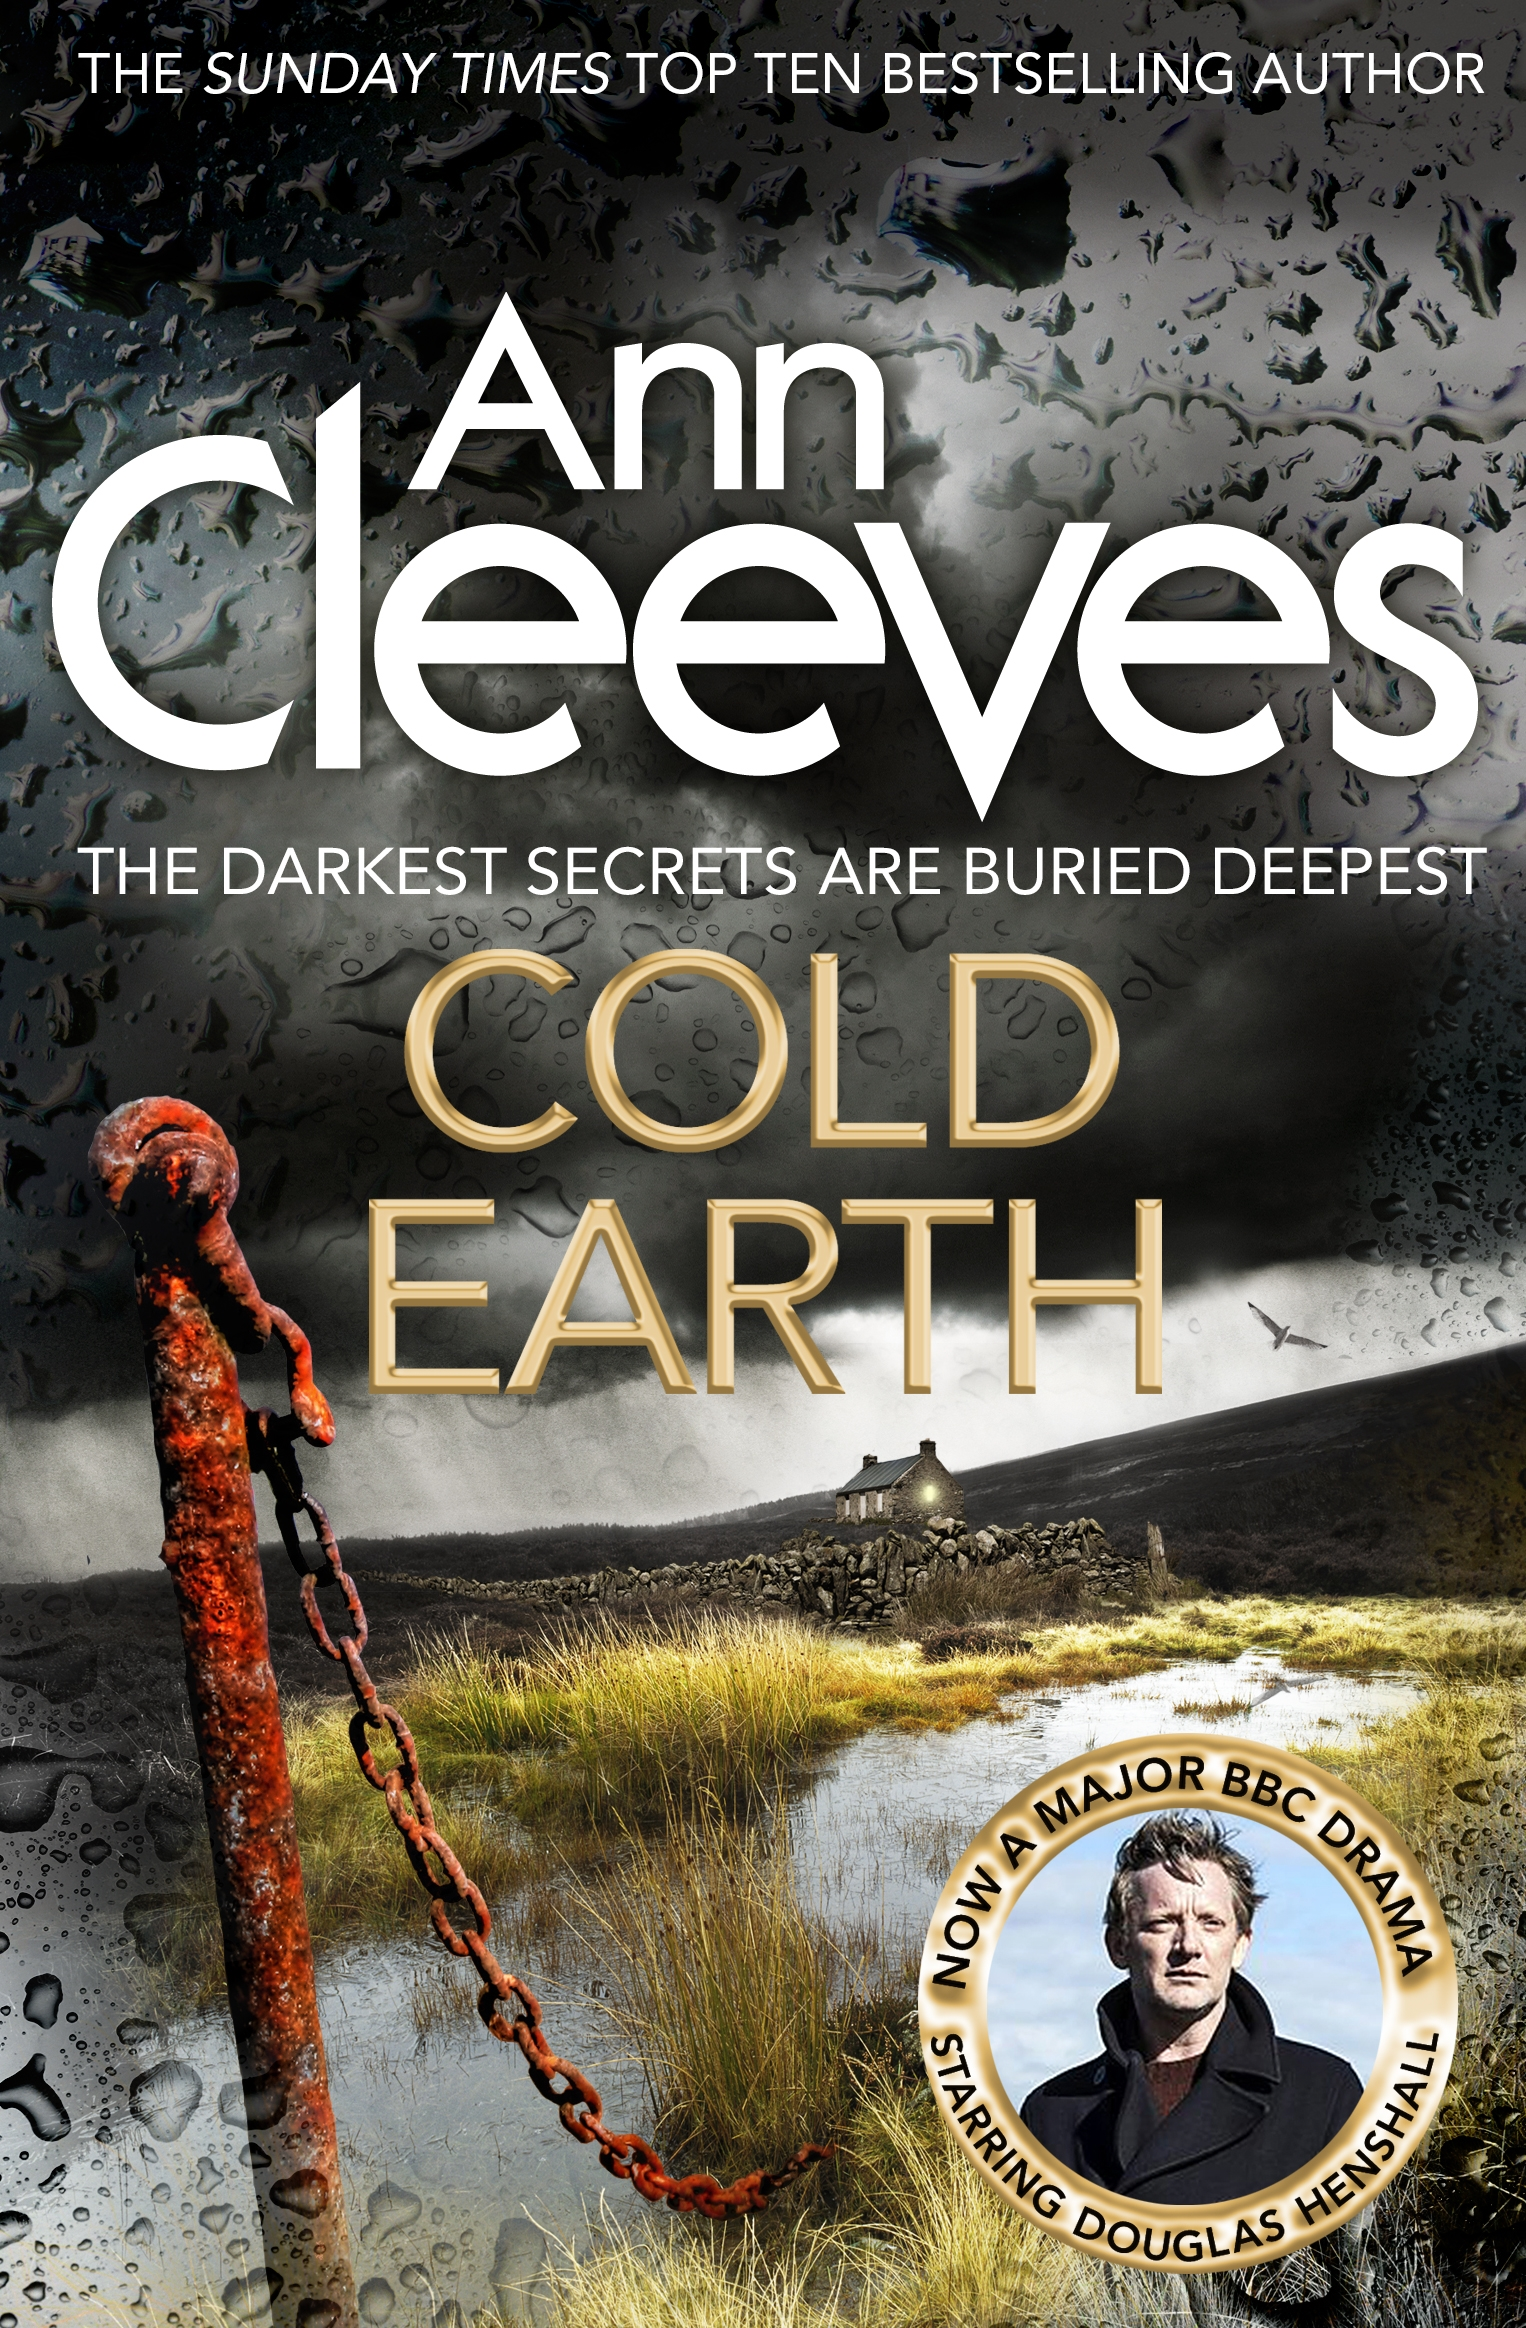 Cold Earth cleeves a cold earth isbn 9781447278221